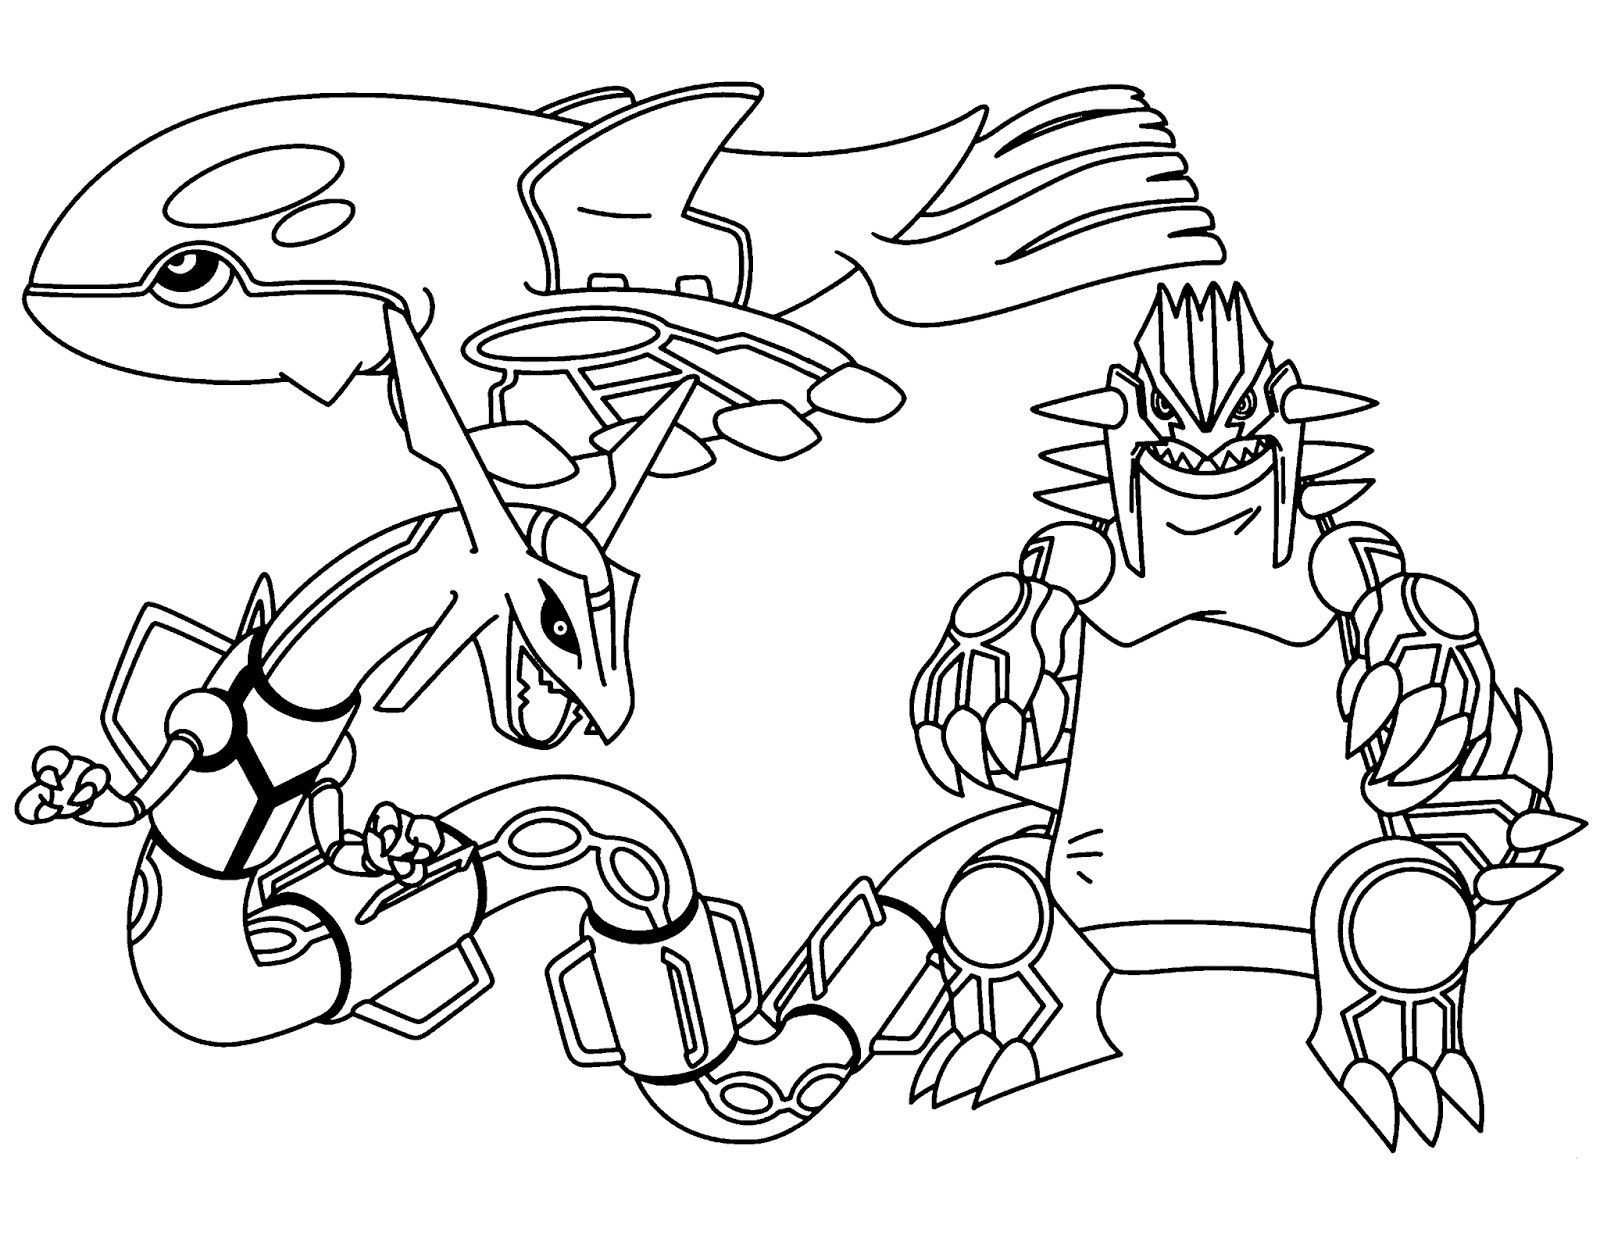 Legendary Pokemon Coloring Pages Rayquaza Through The Thousand Pictures On Line About Legendary Pokemon Coloring Pages Rayquaza We All Selects The Best Sele